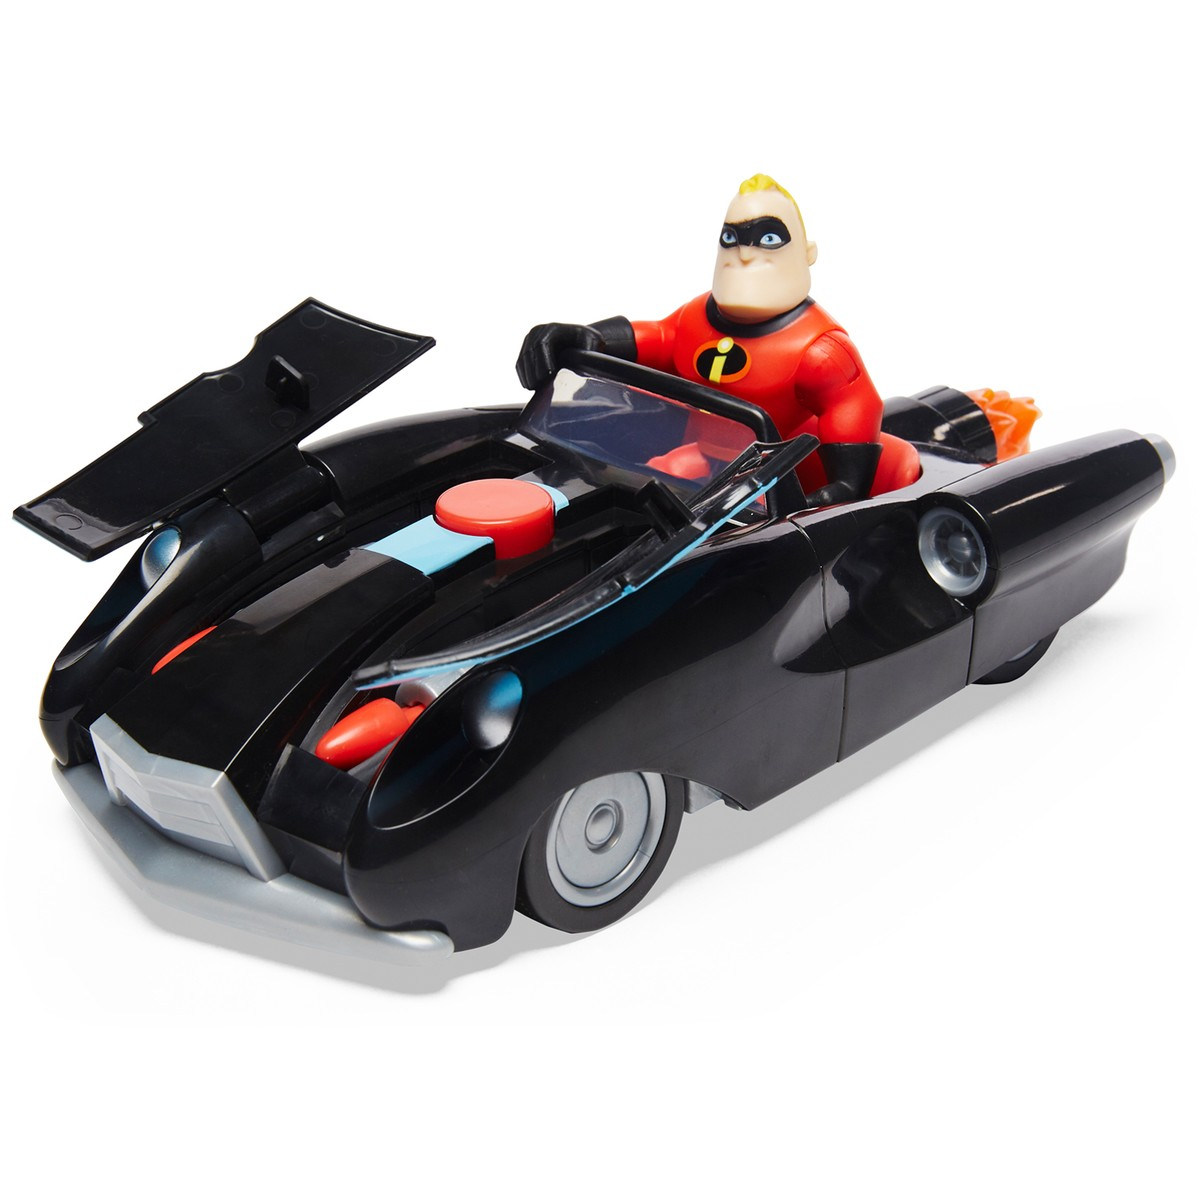 Big W Toy Cars Incredibles 2 Vehicle Figure Assorted Big W